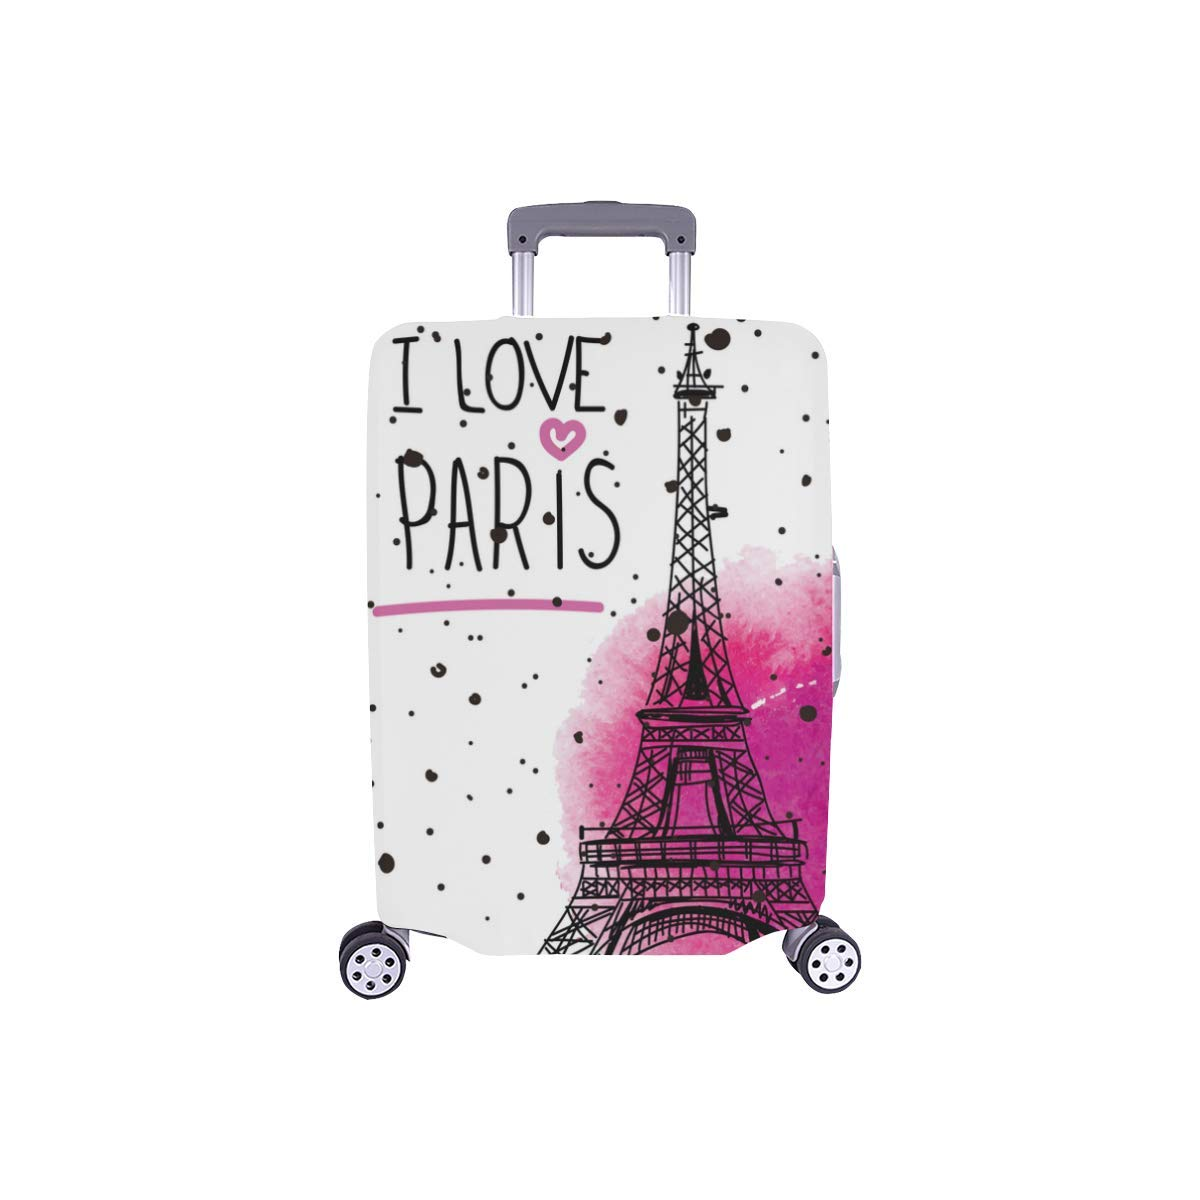 InterestPrint I Love Paris Eiffel Tower Travel Luggage Case Baggage Suitcase Cover Fits 18''-21'' Luggage by InterestPrint (Image #1)